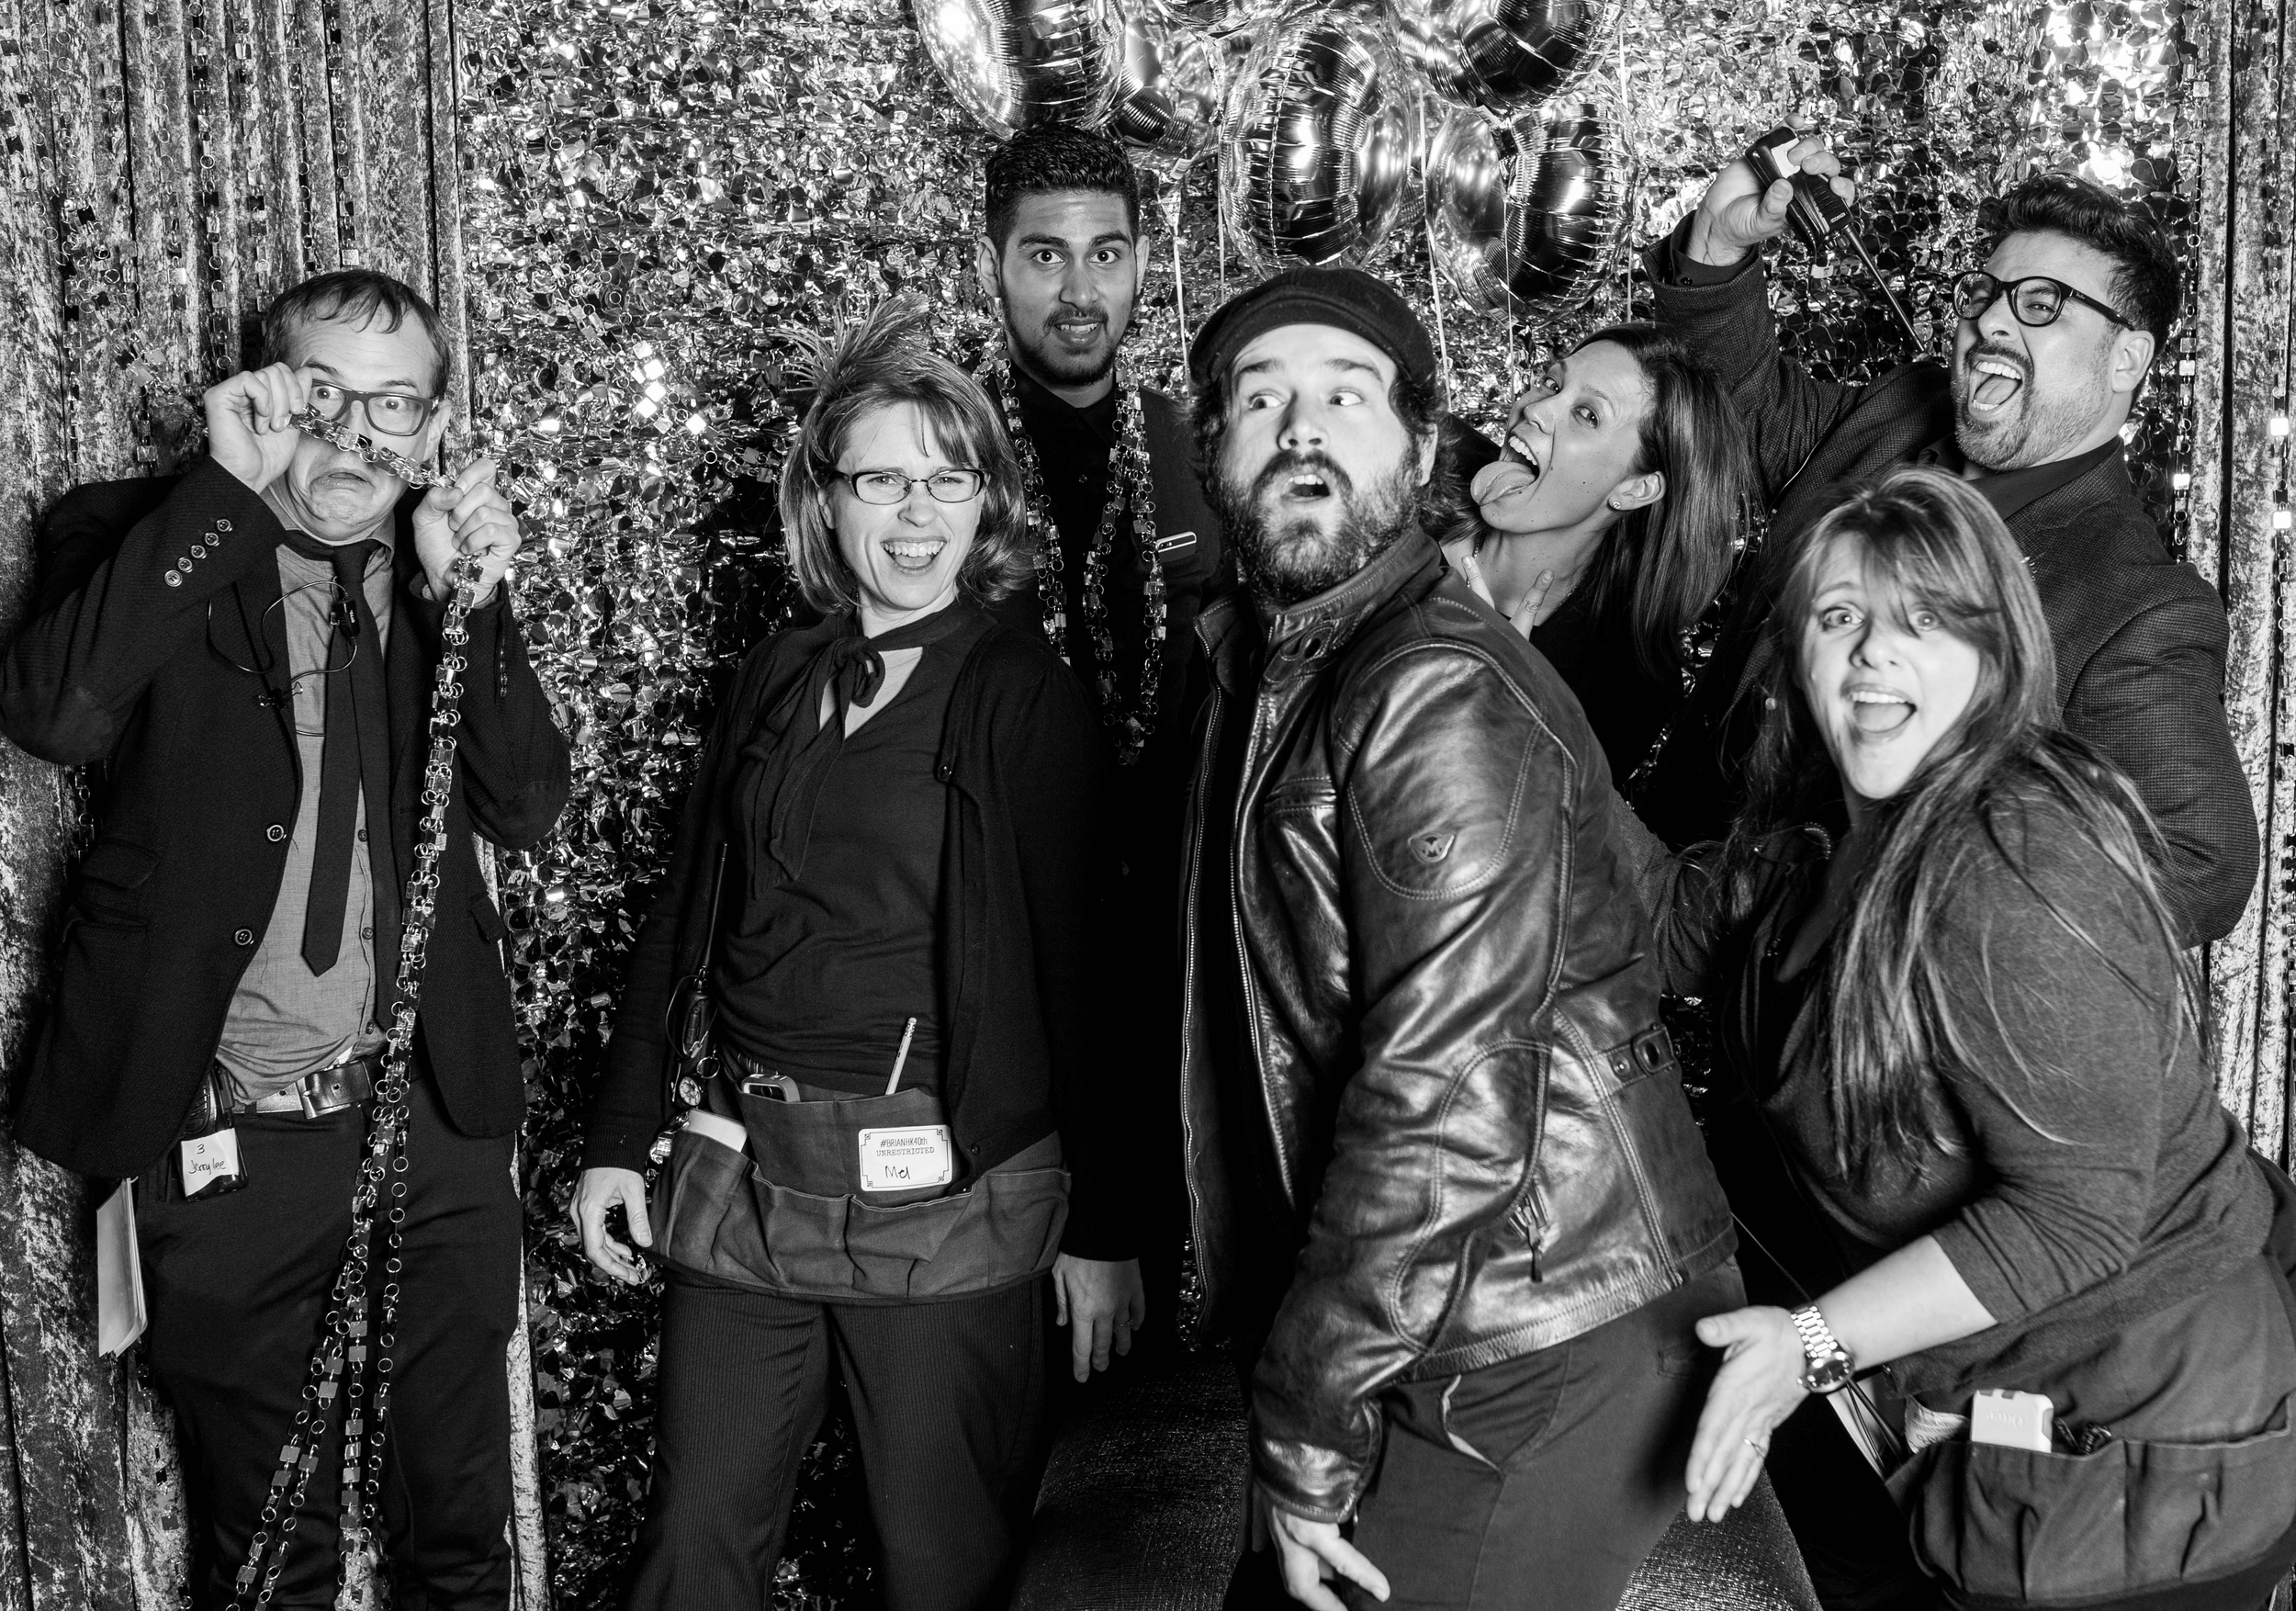 The show wouldn't have been flawless without this Merry Band of Misfit Toys at the Helm!!!! Sasha, Mel, Rachel, Jerry, Nico and gang....you were amazing to work with..........